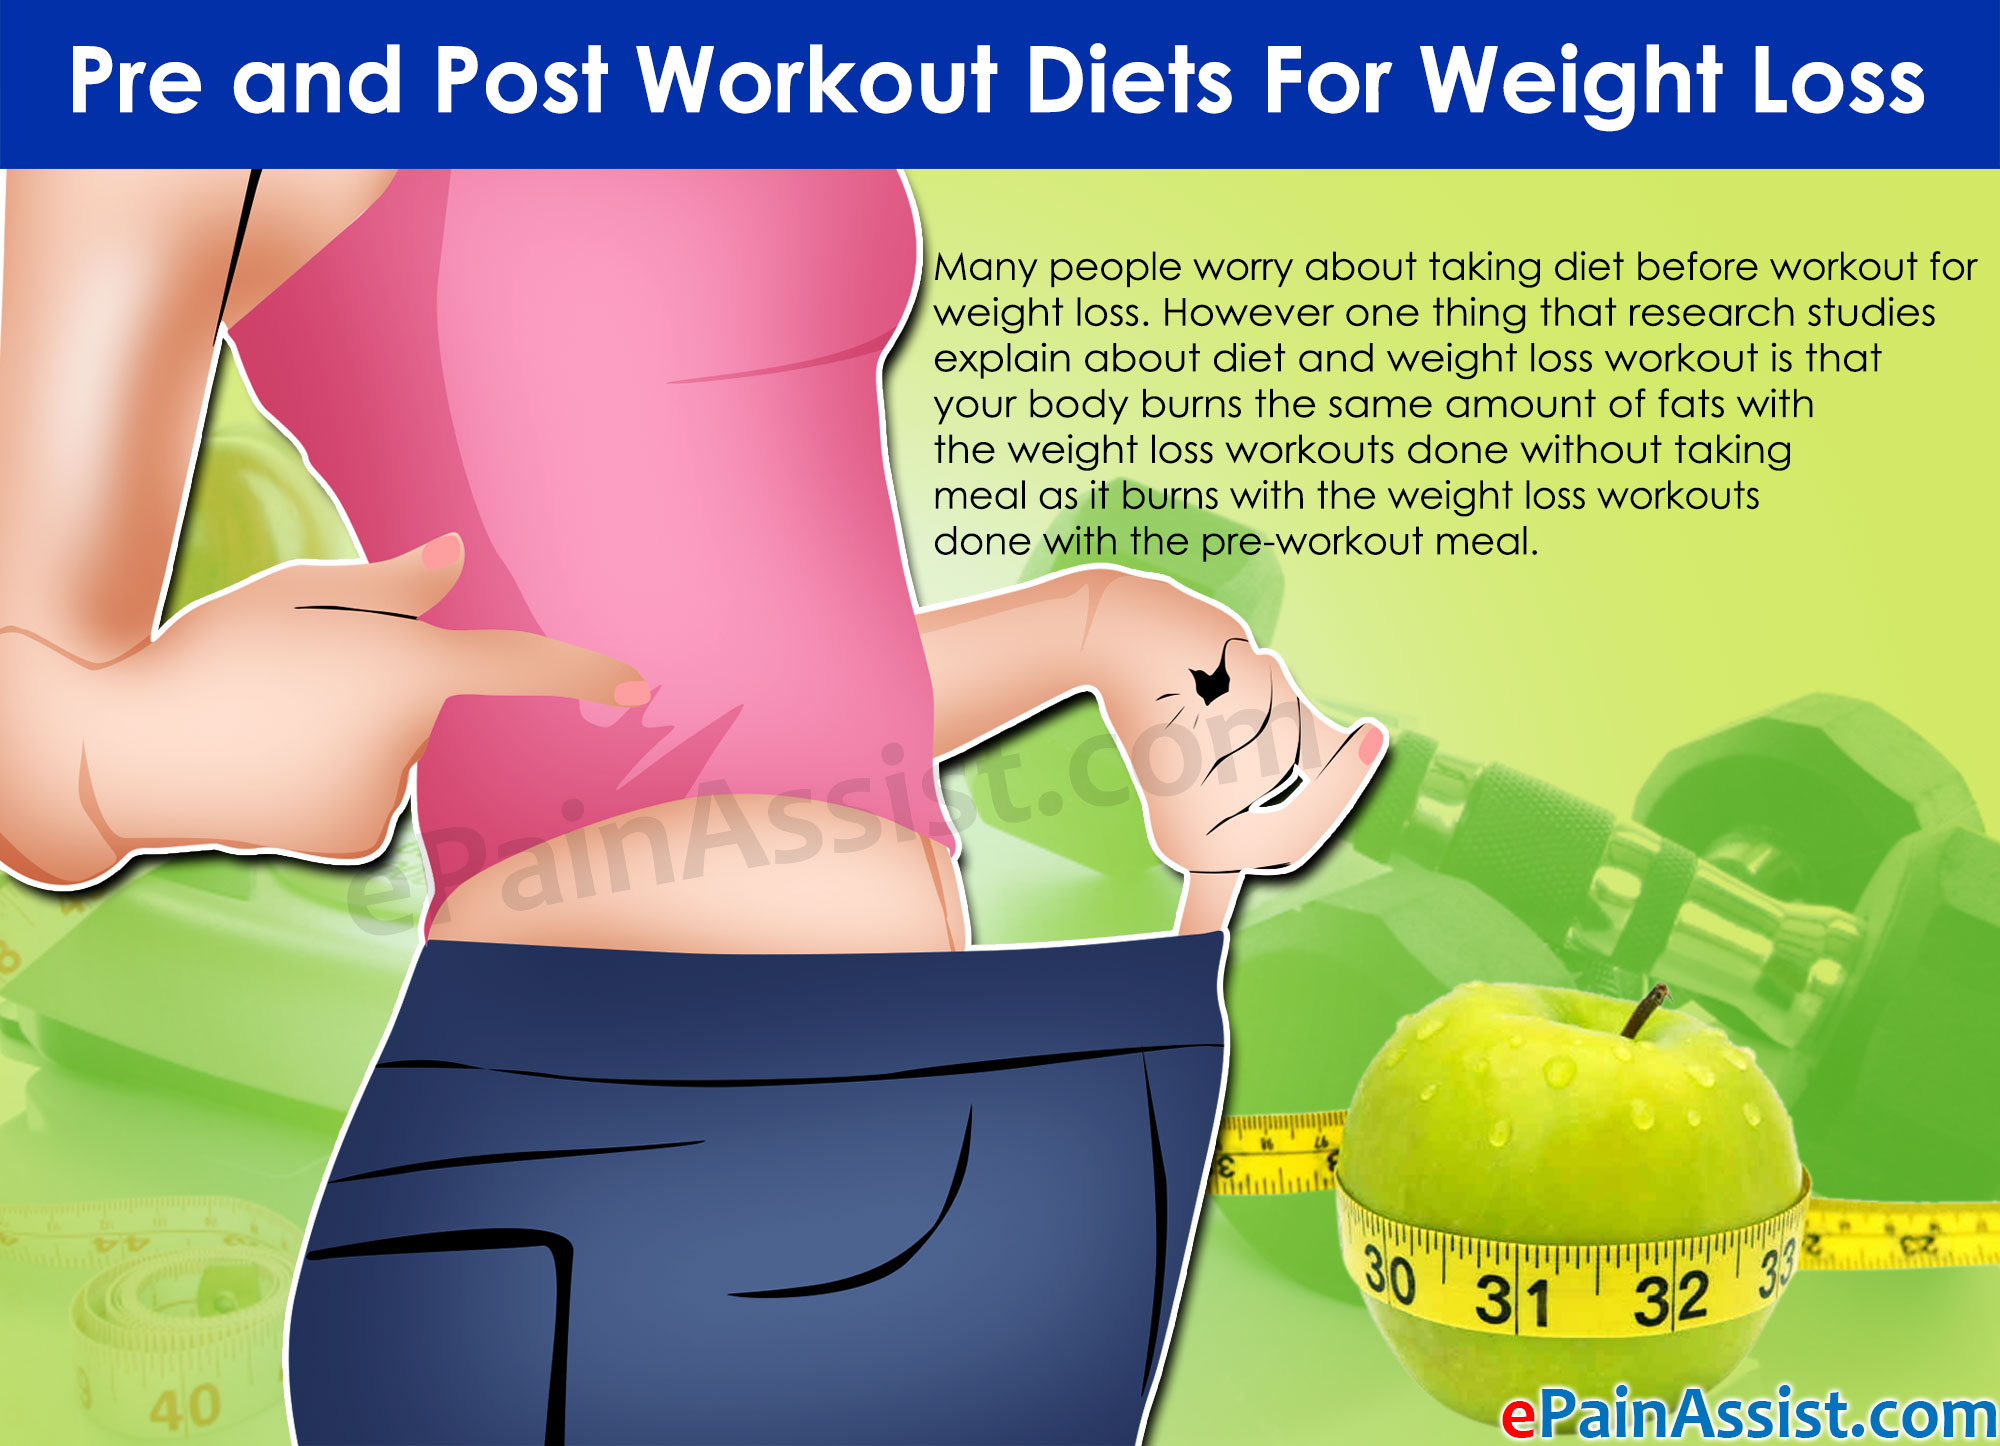 Importance Of Diet Before Workouts For Weight Loss: Why Is Pre-Workout Diet Important?